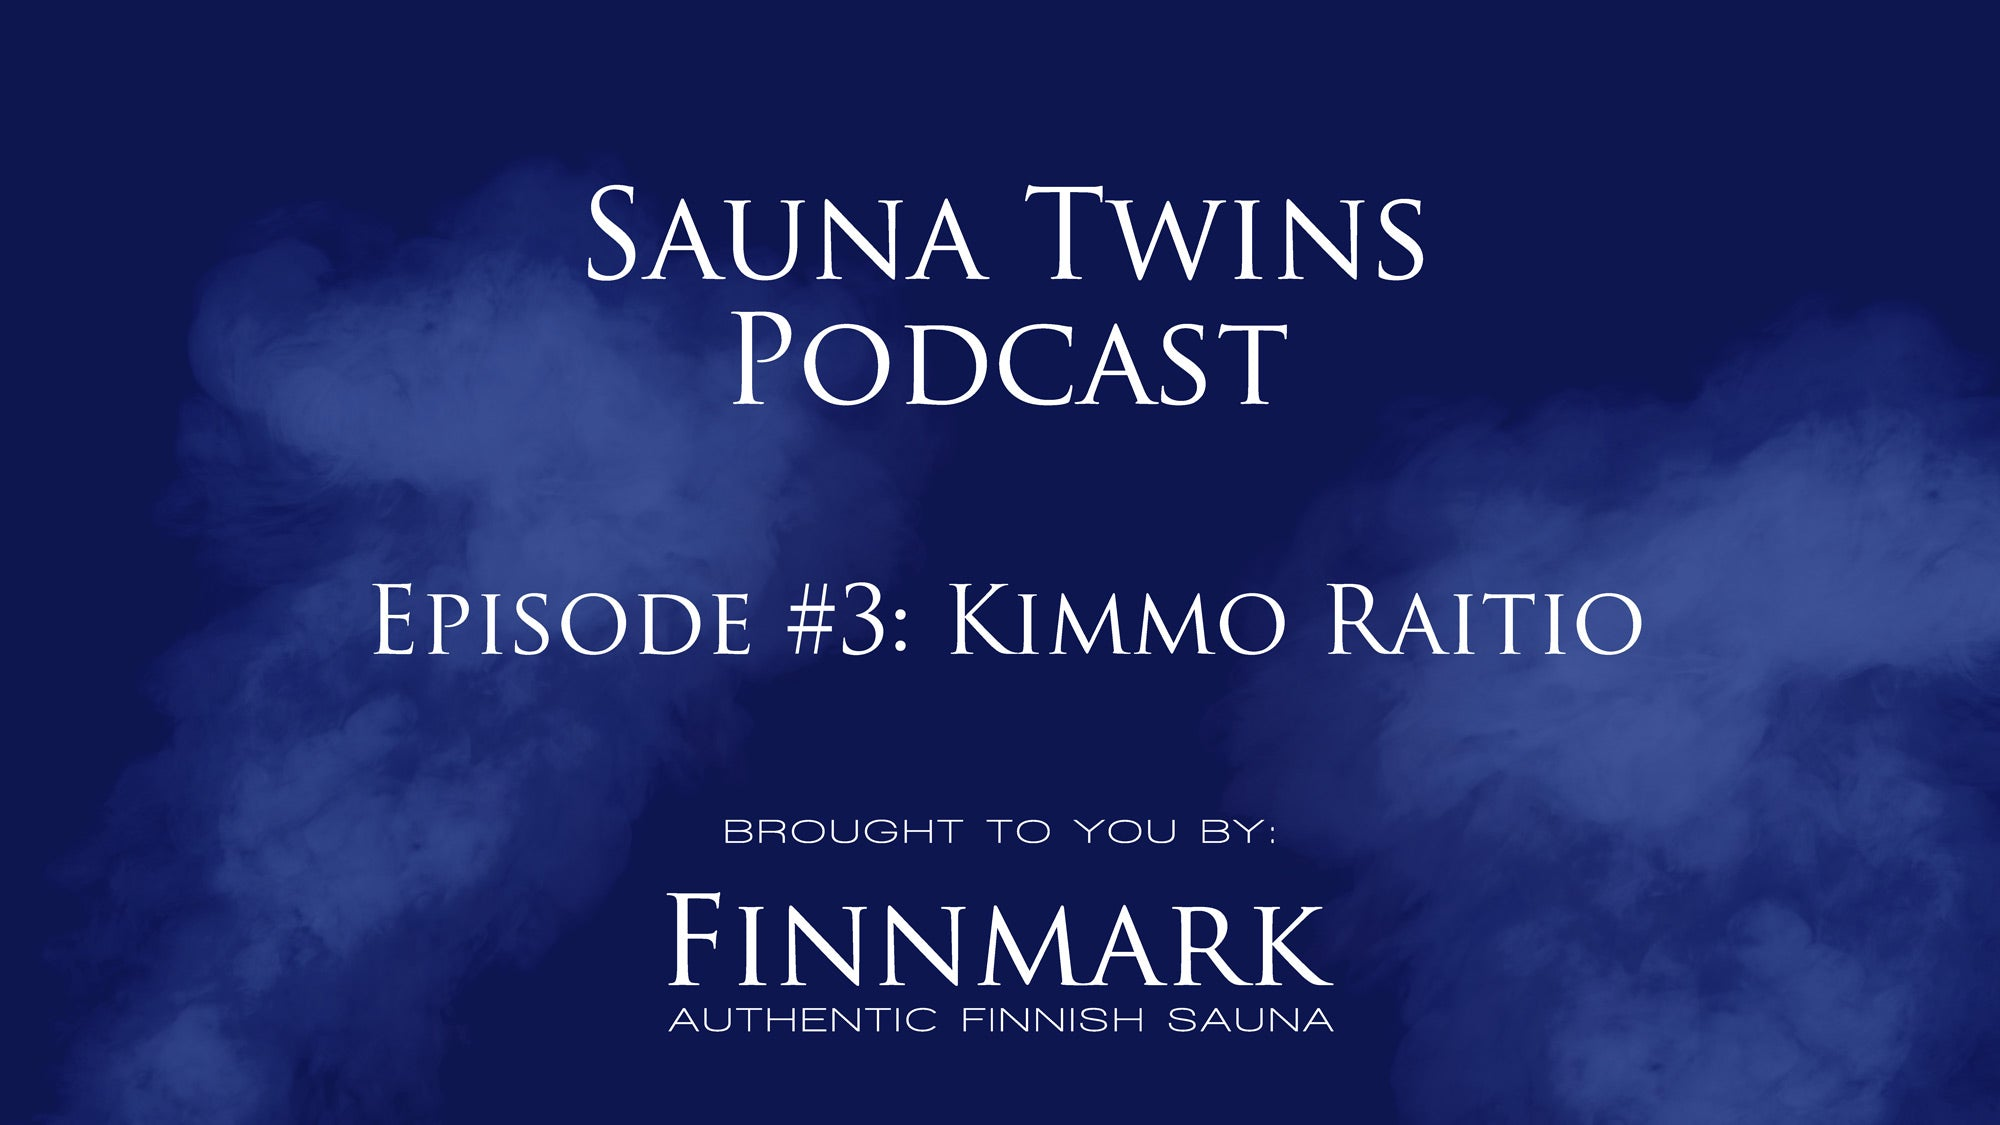 Sauna Twins Podcast - Episode #3 Kimmo Raitio | Finnmark Sauna